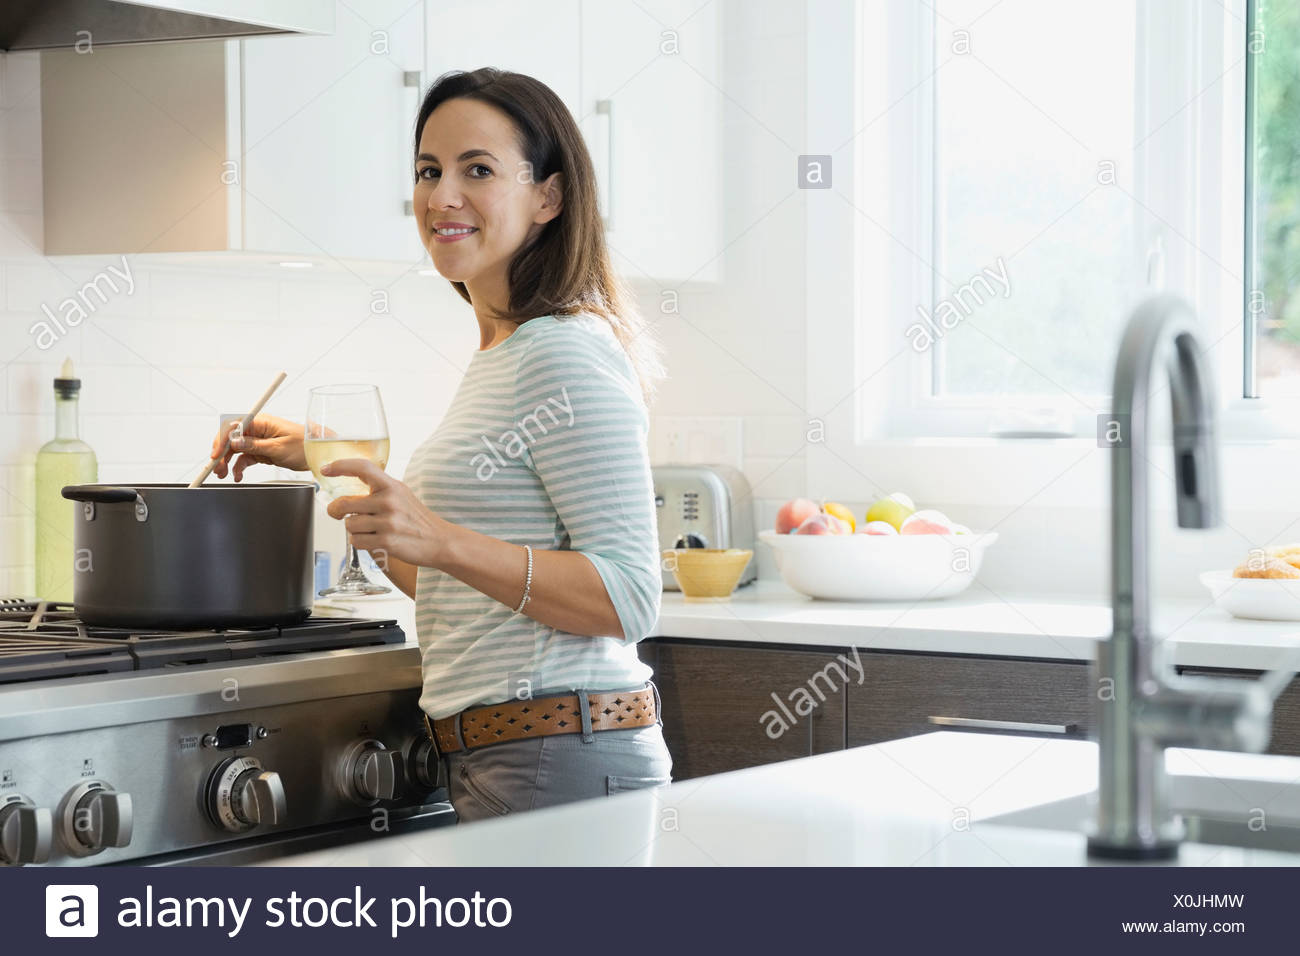 Portrait of smiling woman with wineglass cooking in kitchen - Stock Image